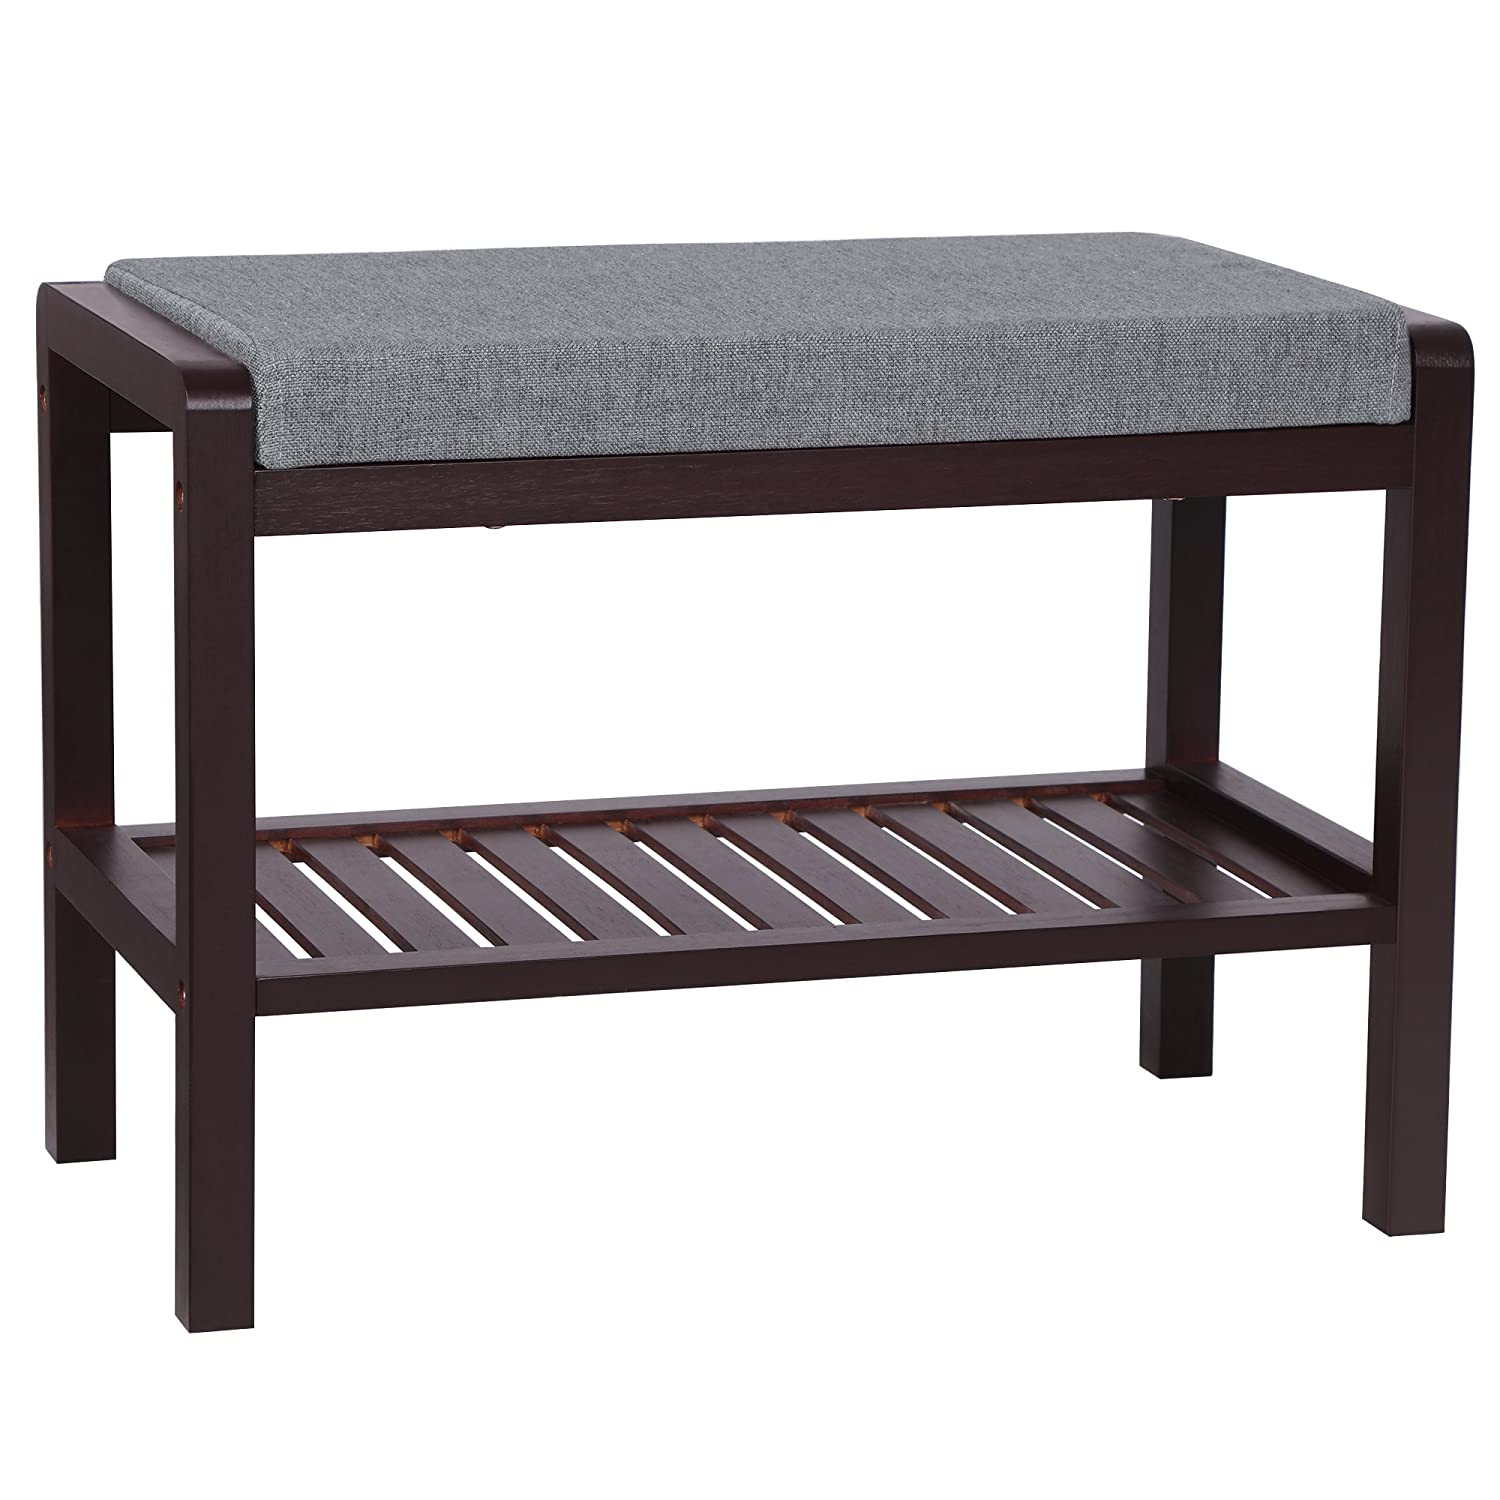 Brown SONGMICS Bamboo Wood shoes Bench Rack with Cushion Upholstered Padded Seat Storage Shelf Bench for Entryway Bedroom Living Room Hallway Garage Mud Room ULBS65C